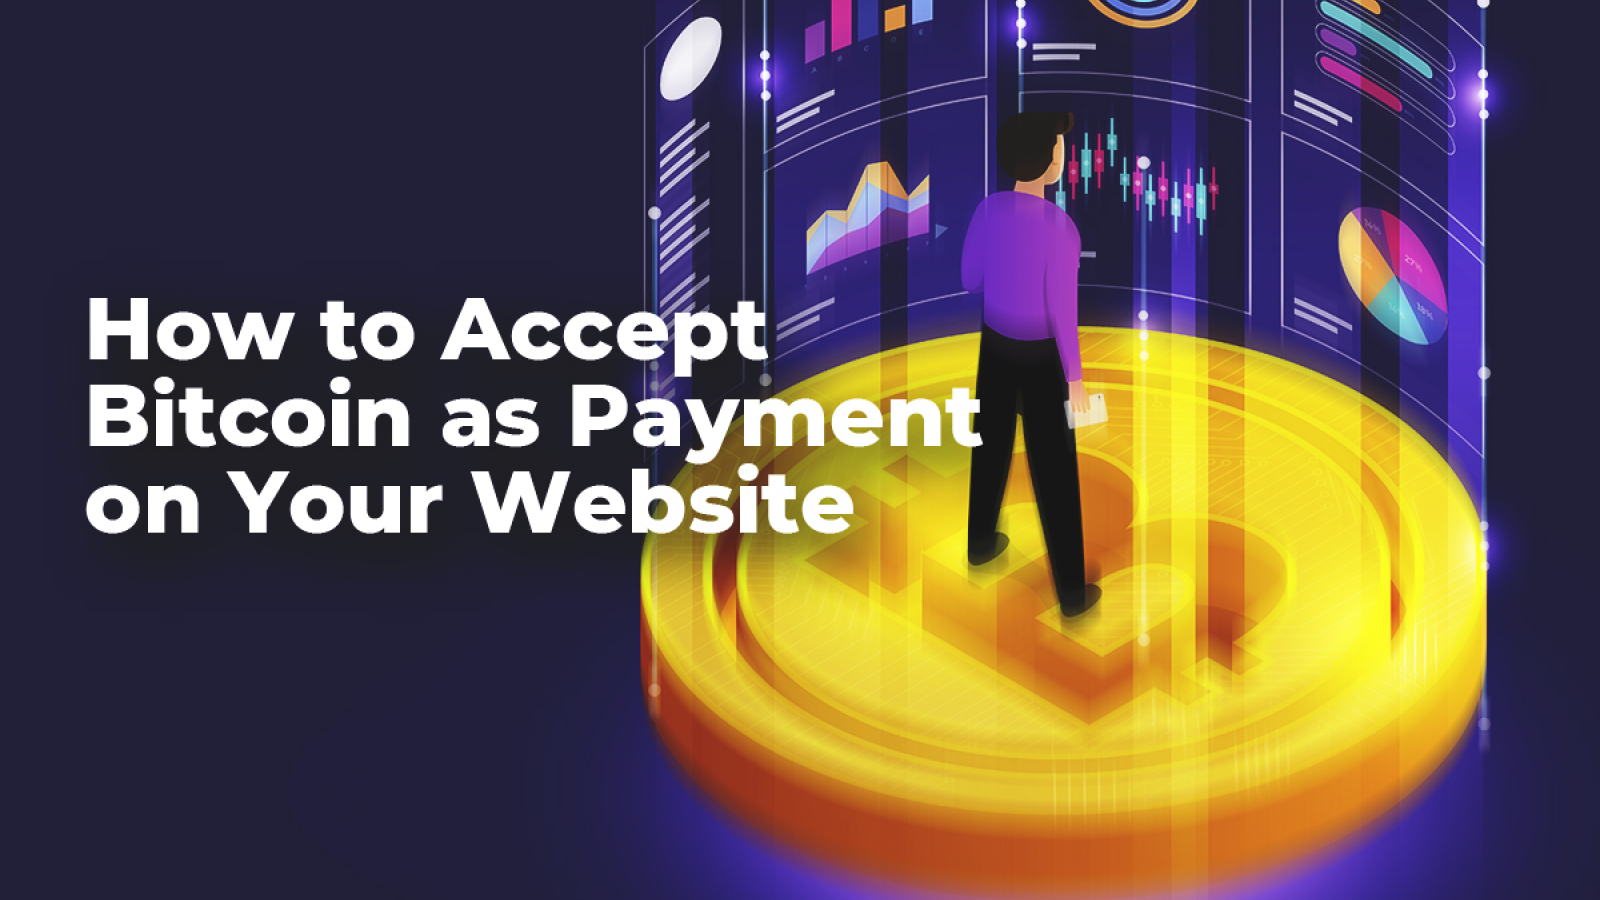 Accept bitcoins on your website not on a bet